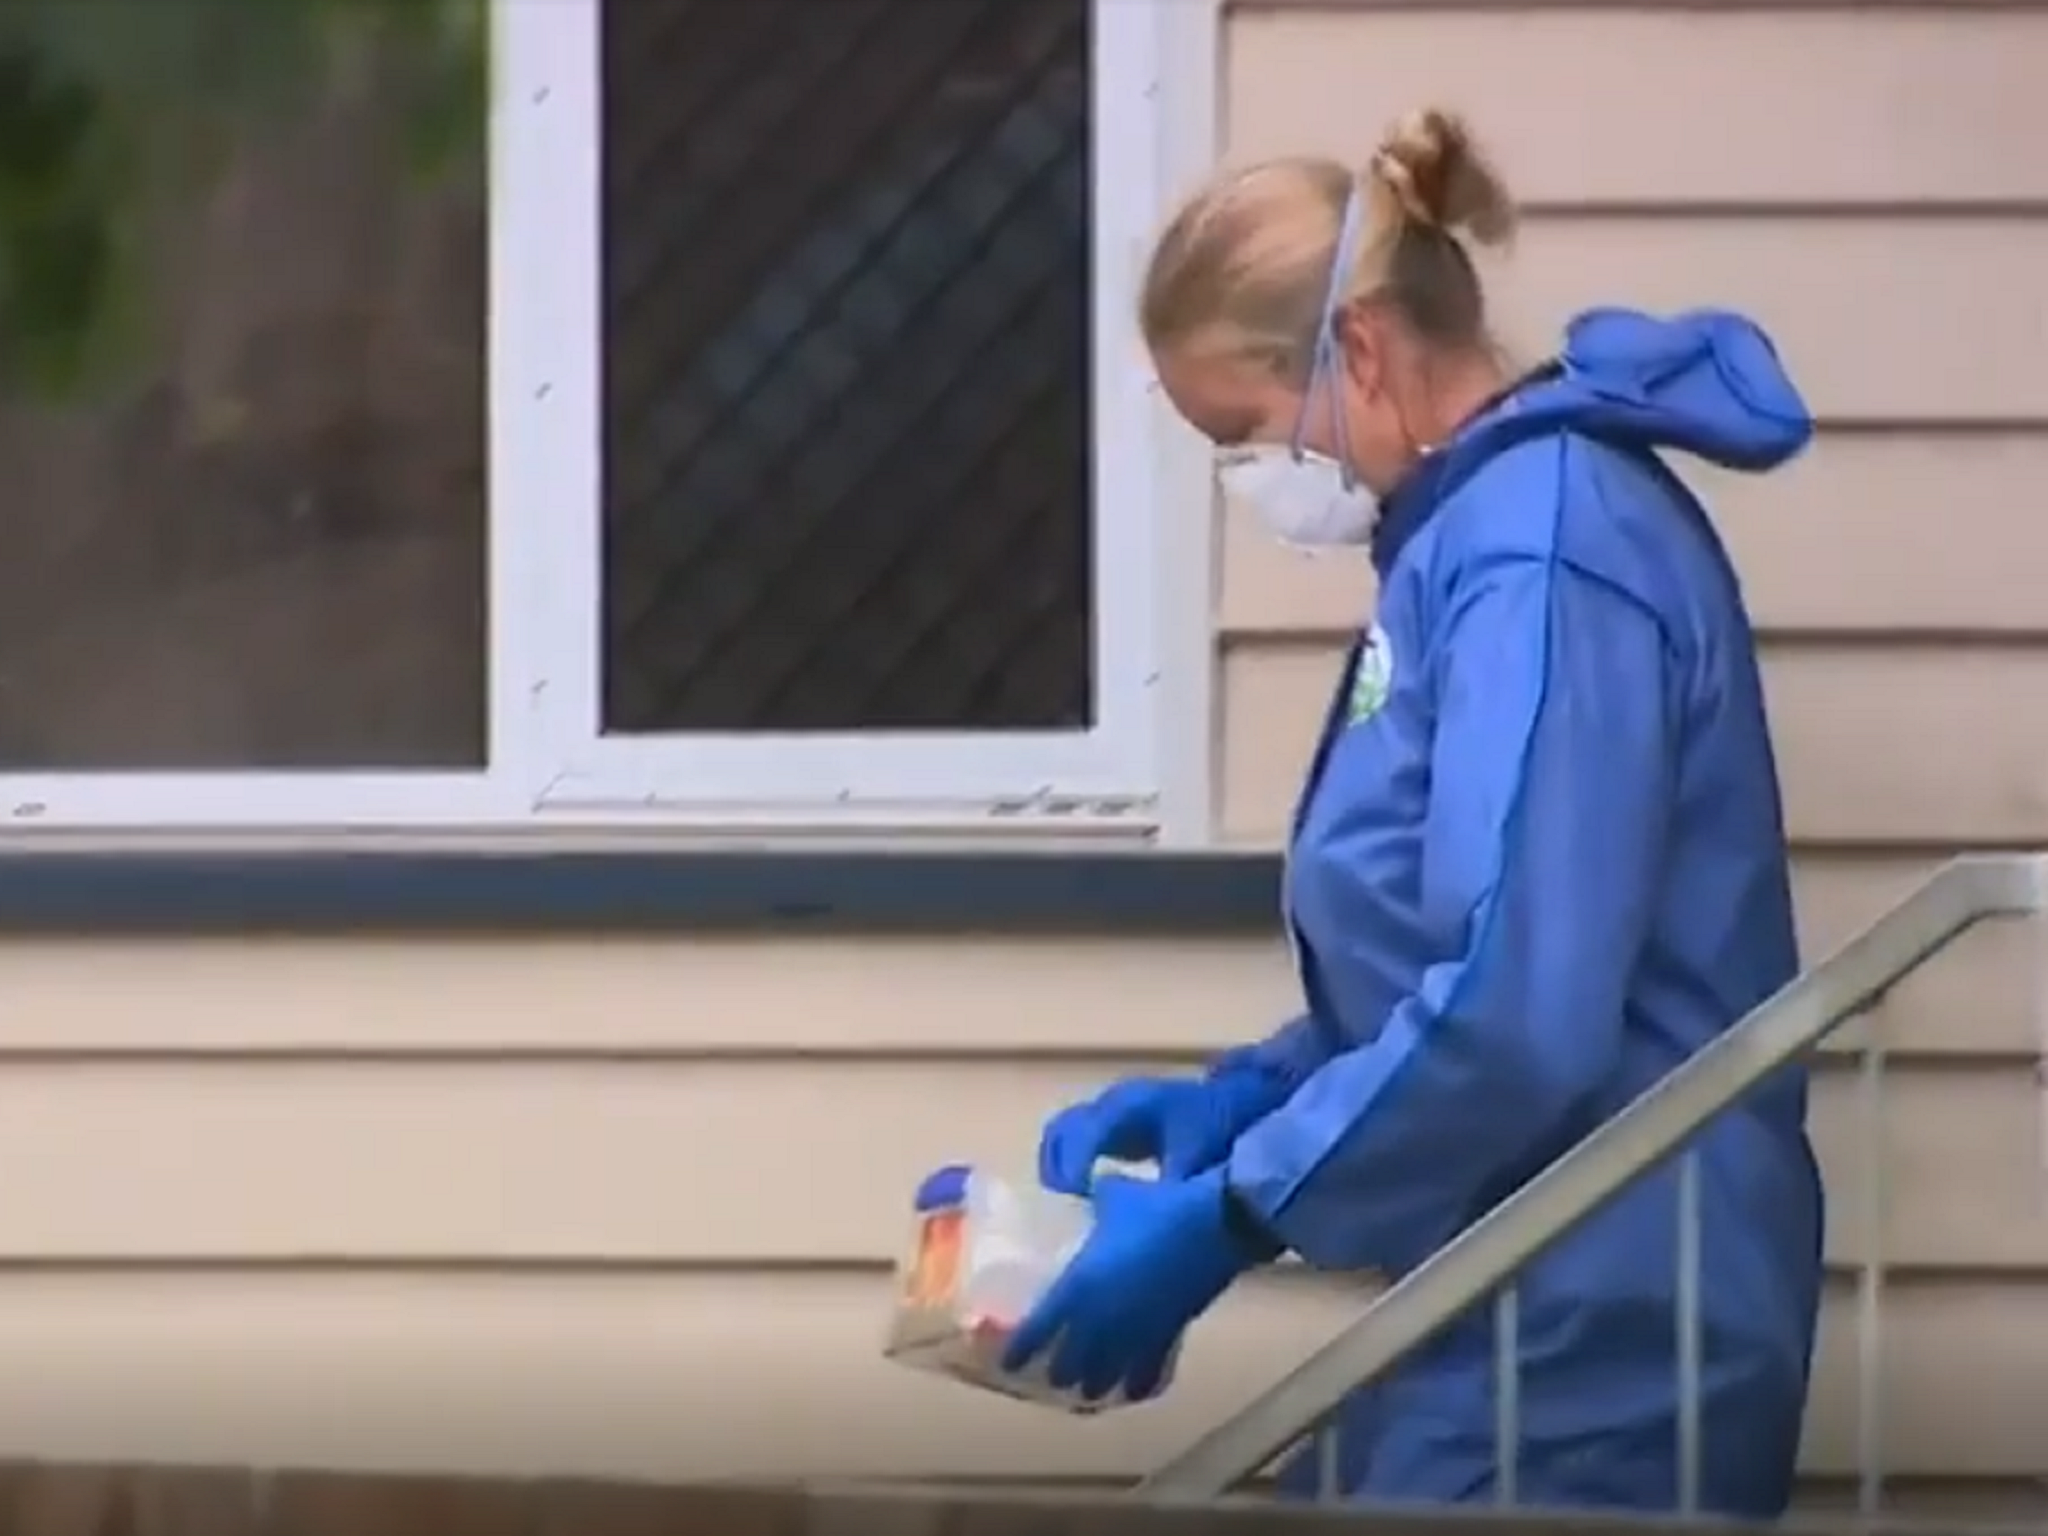 Malnourished teenagers found locked up in Australian home